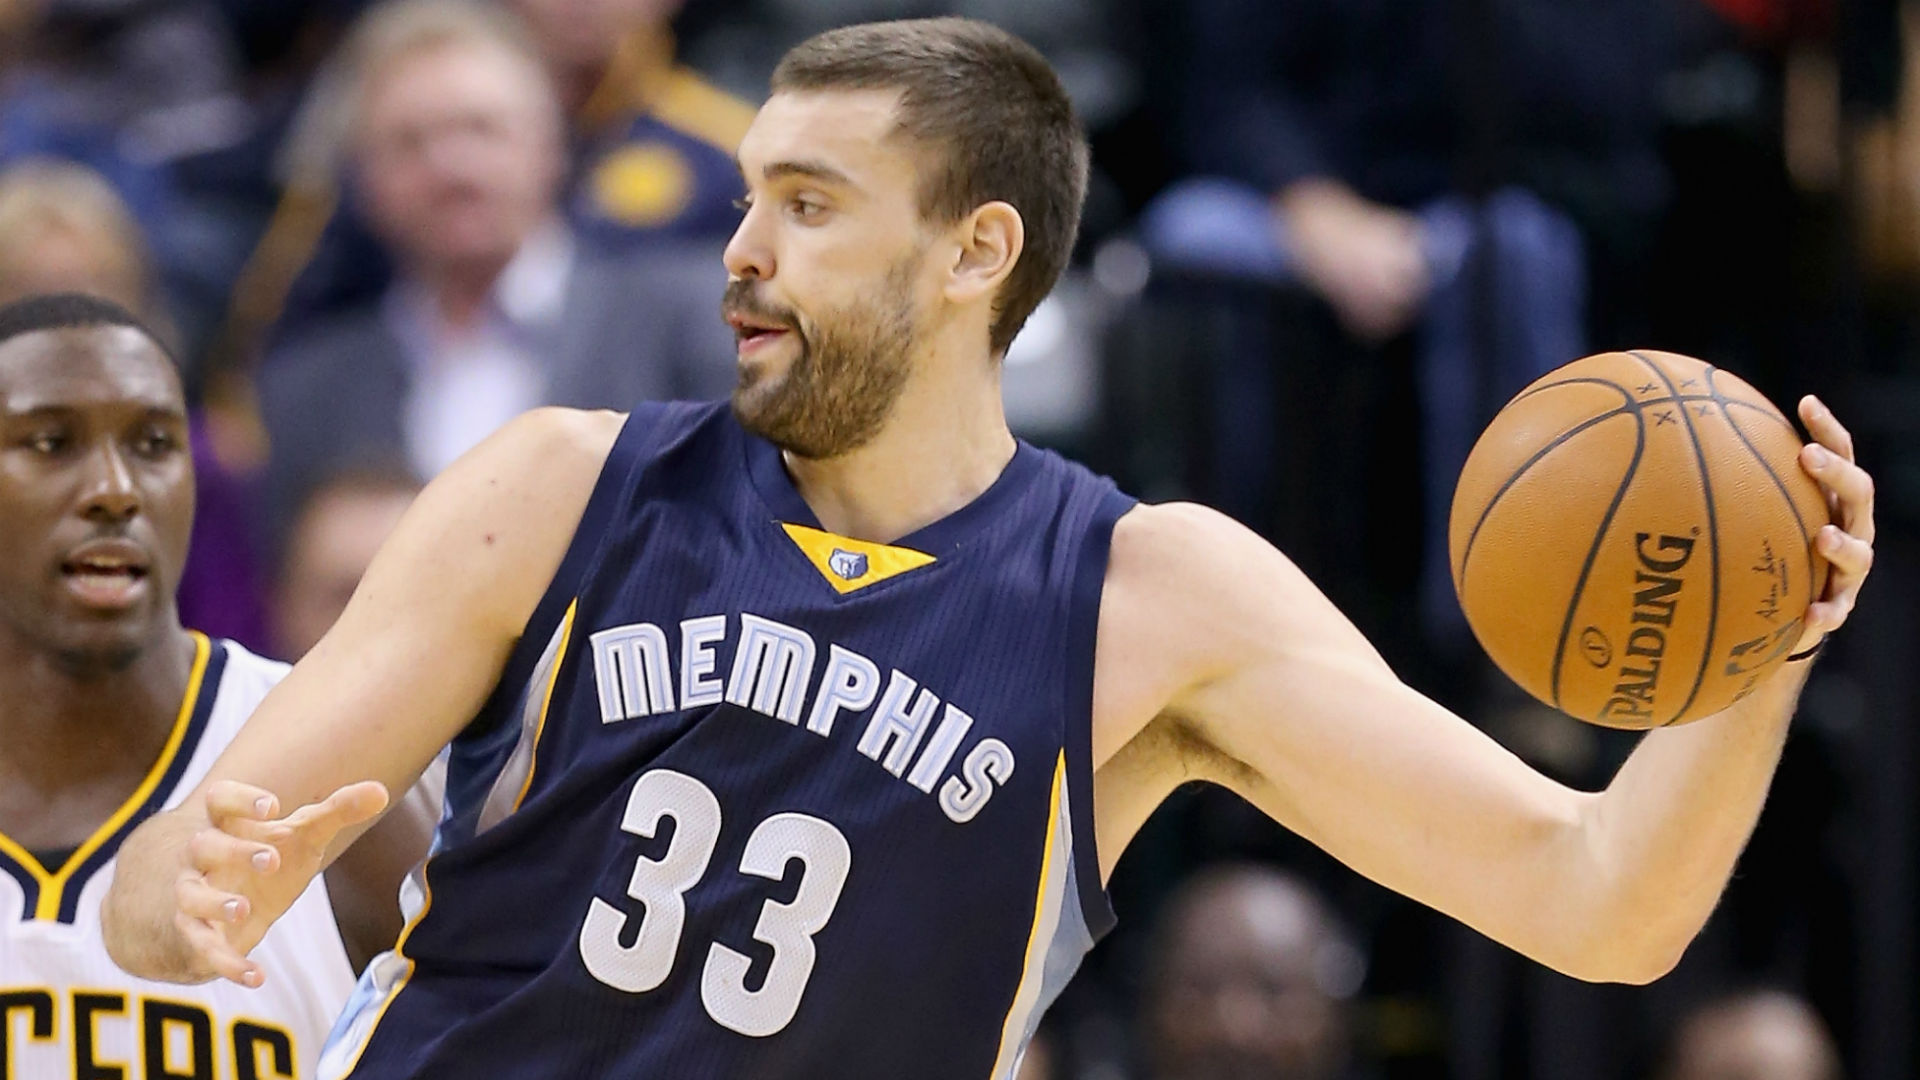 AccuScore NBA pick - Clippers try to solve Grizzlies in Sunday showdown